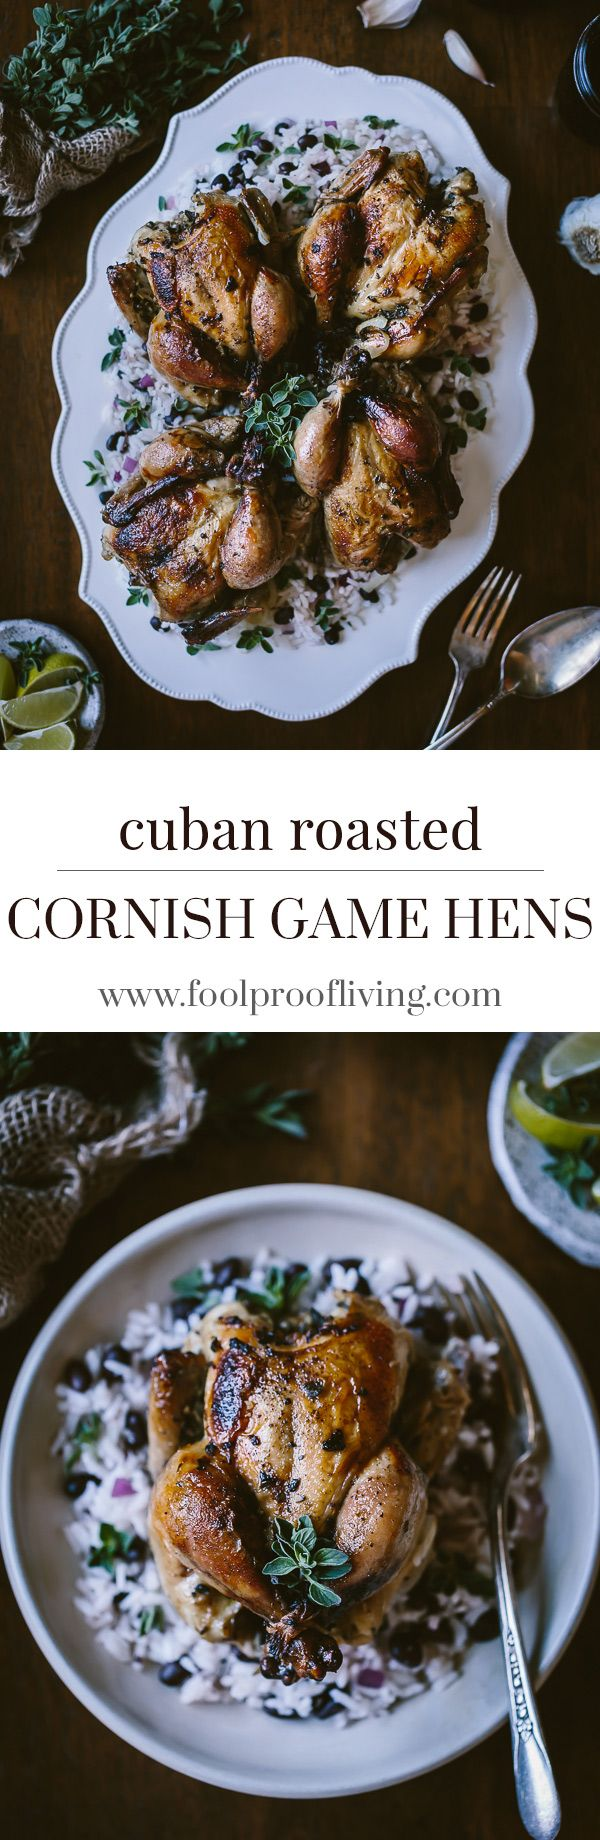 Cuban Roast Cornish Game Hens: Recipe for lime-garlic-fresh oregano marinated cornish game hens roasted in the oven beautifully served on cuban black bean rice.